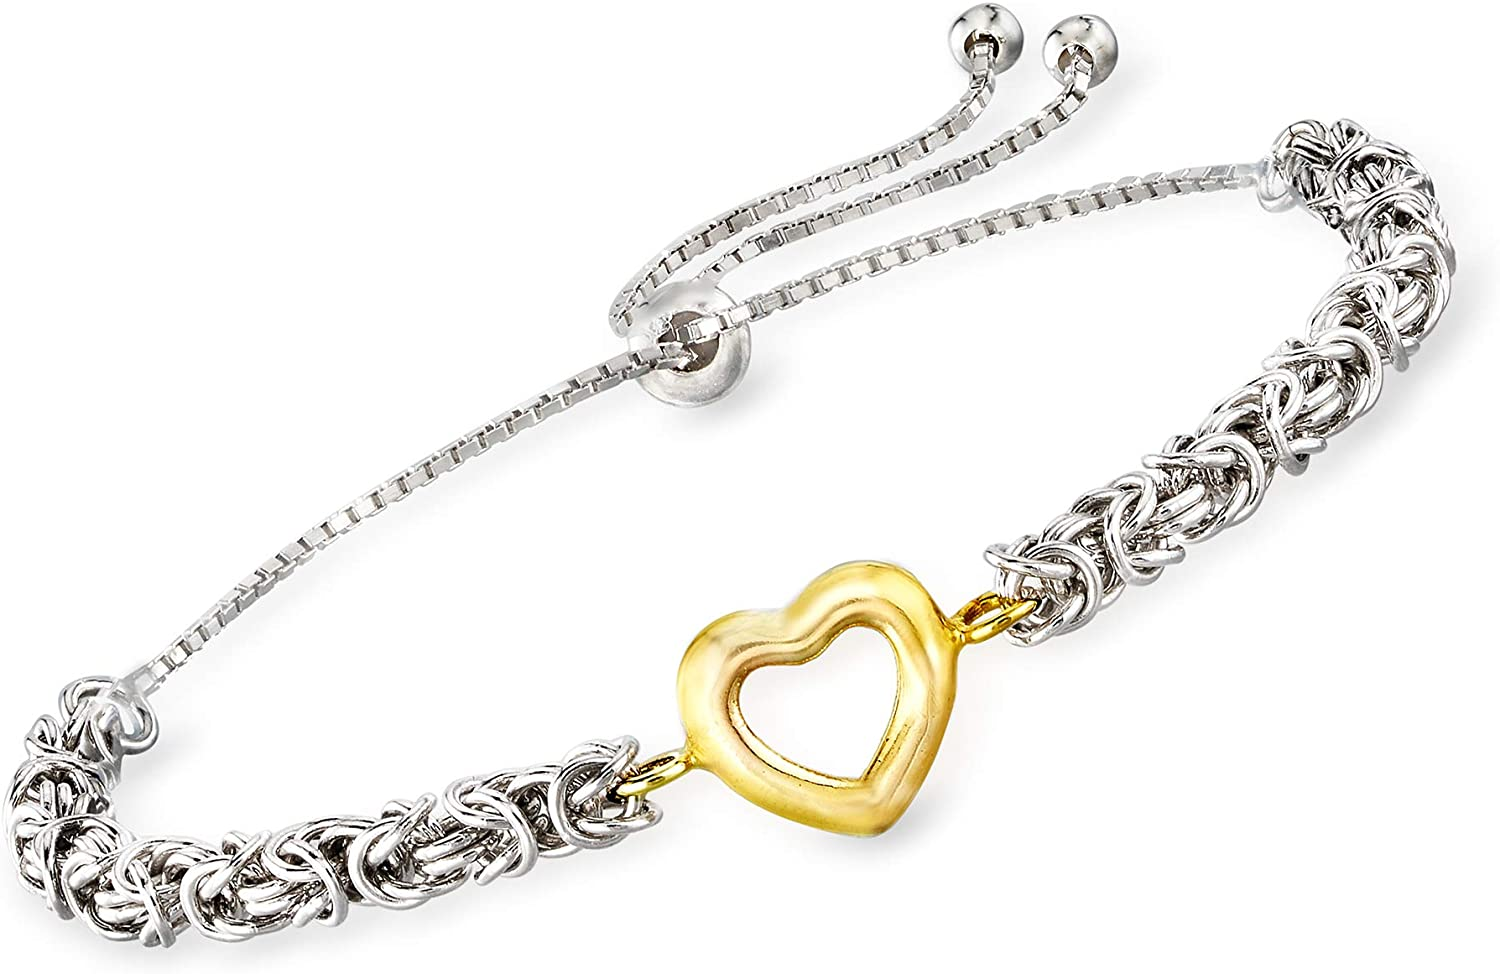 Ross-Simons Open-Space Heart Byzantine Bolo Bracelet in Sterling Silver and 14kt Yellow Gold